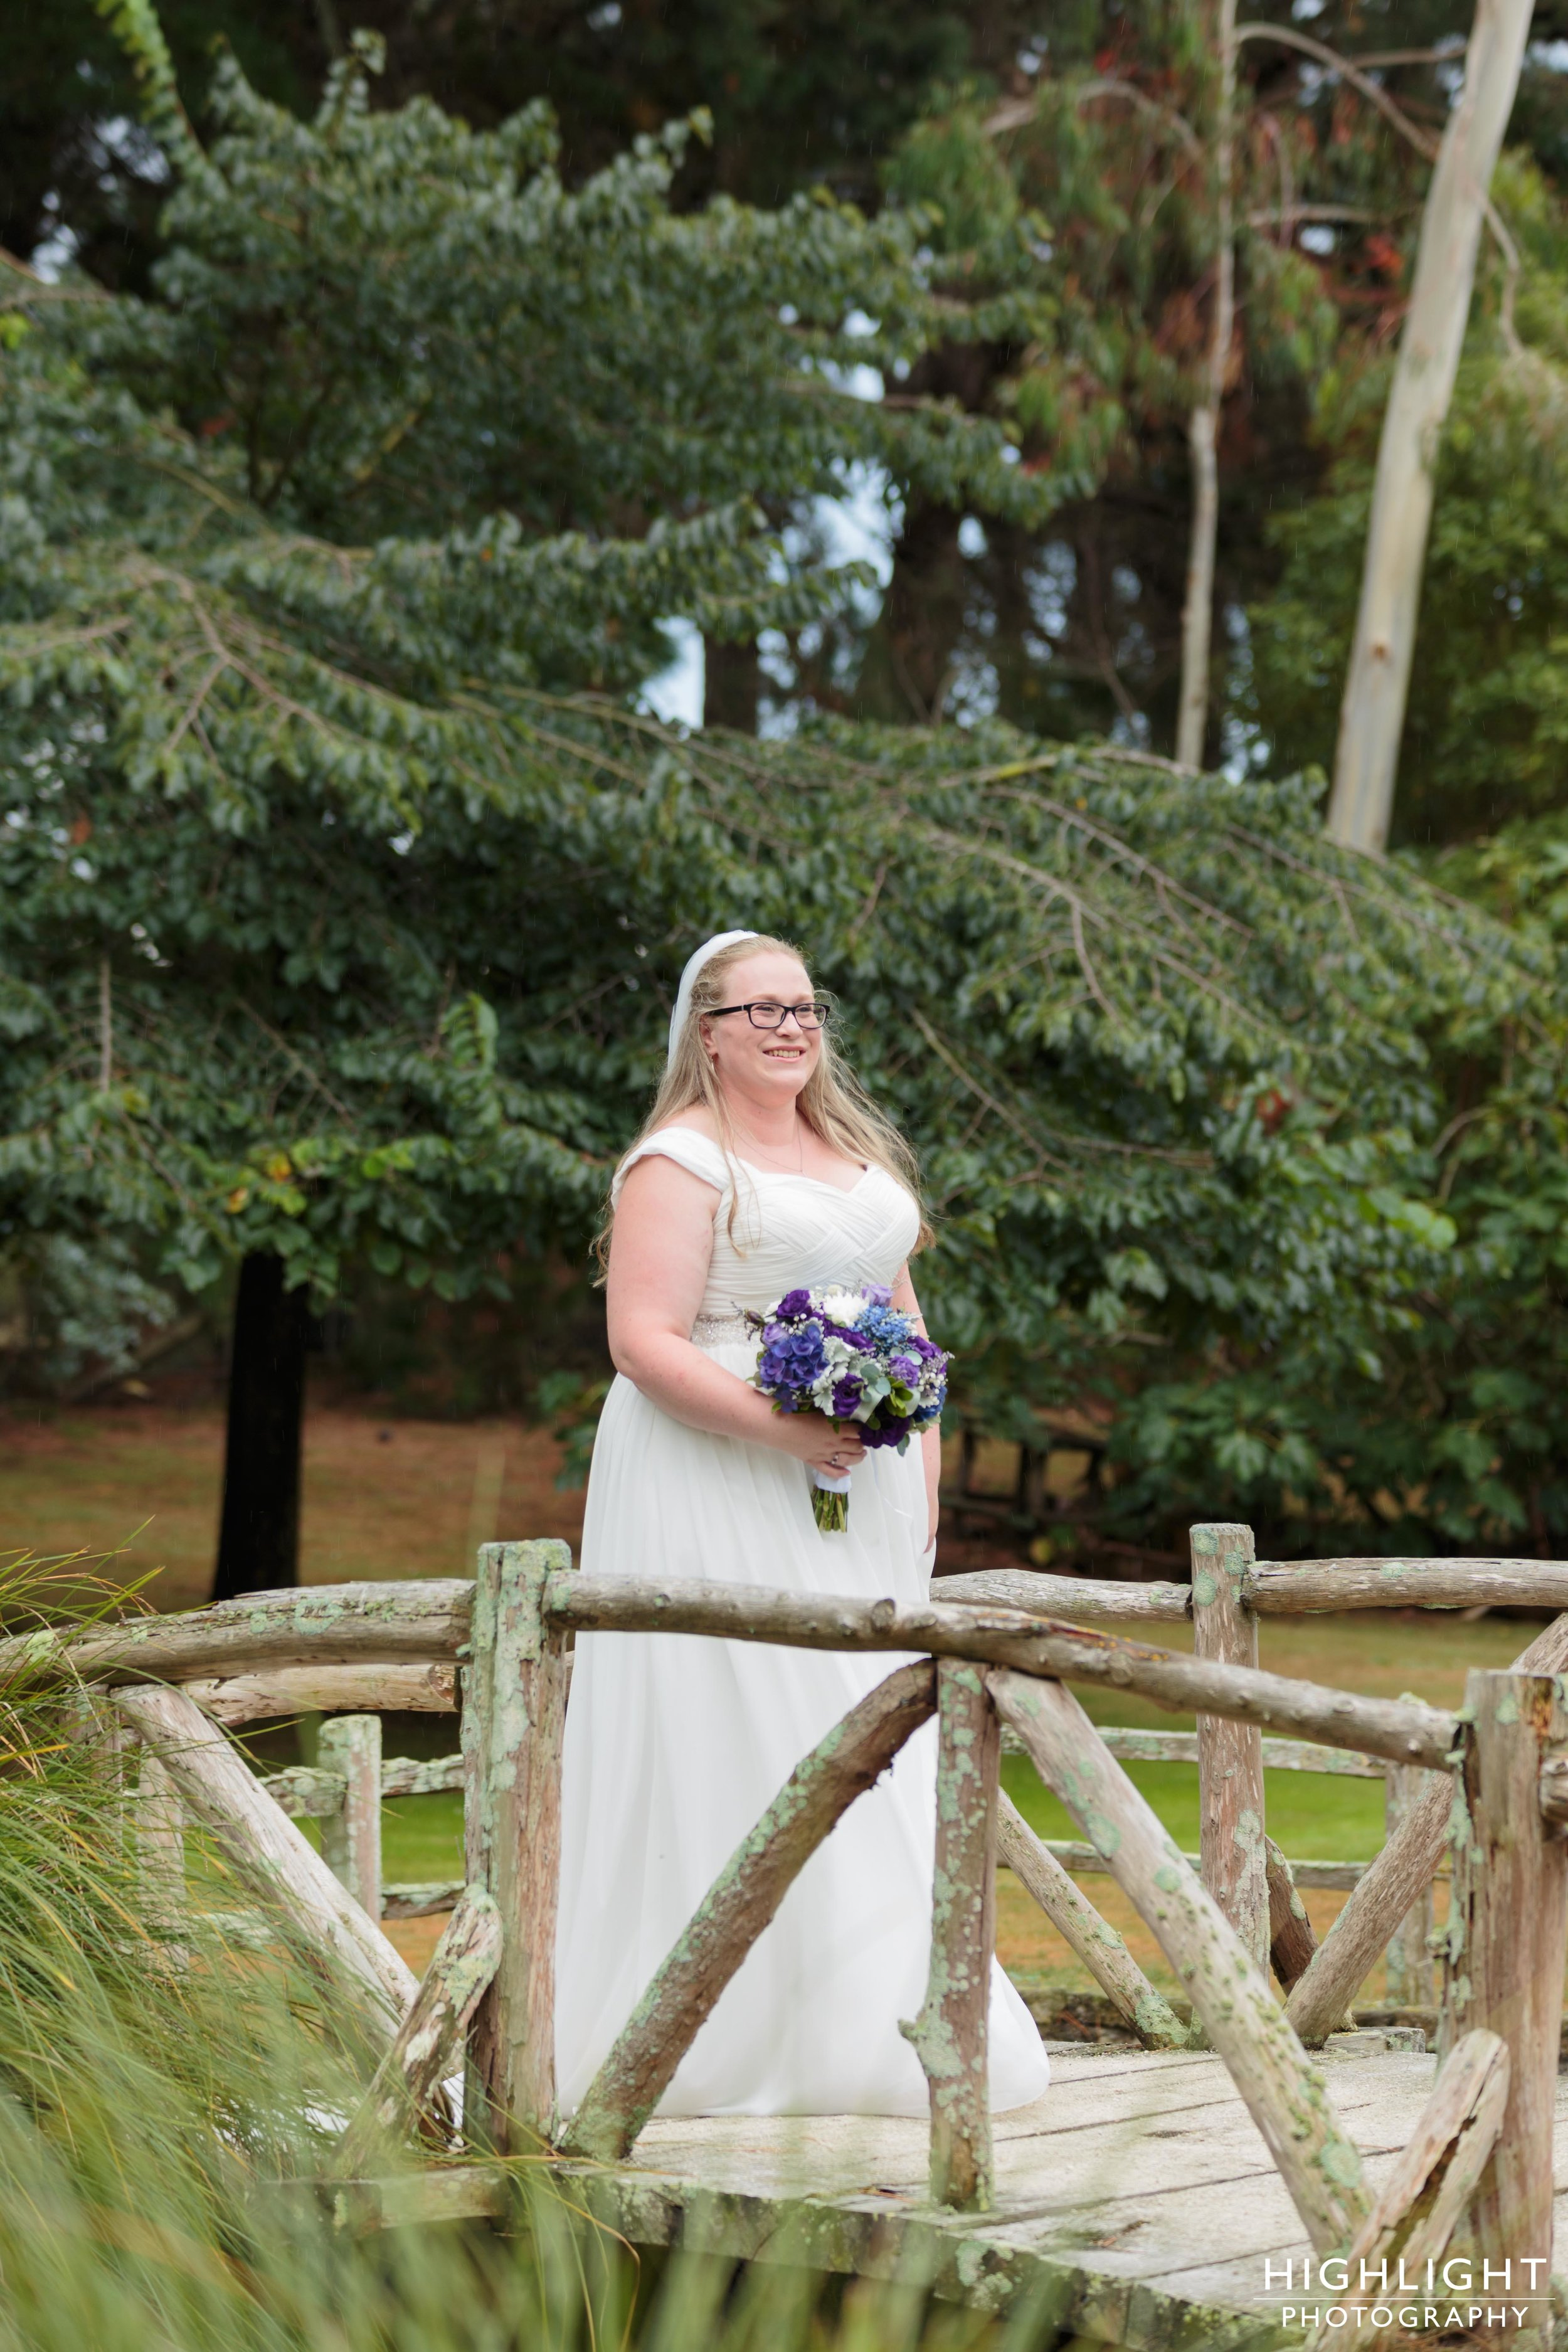 highlight-wedding-photography-new-zealand-palmerston-north-48.jpg